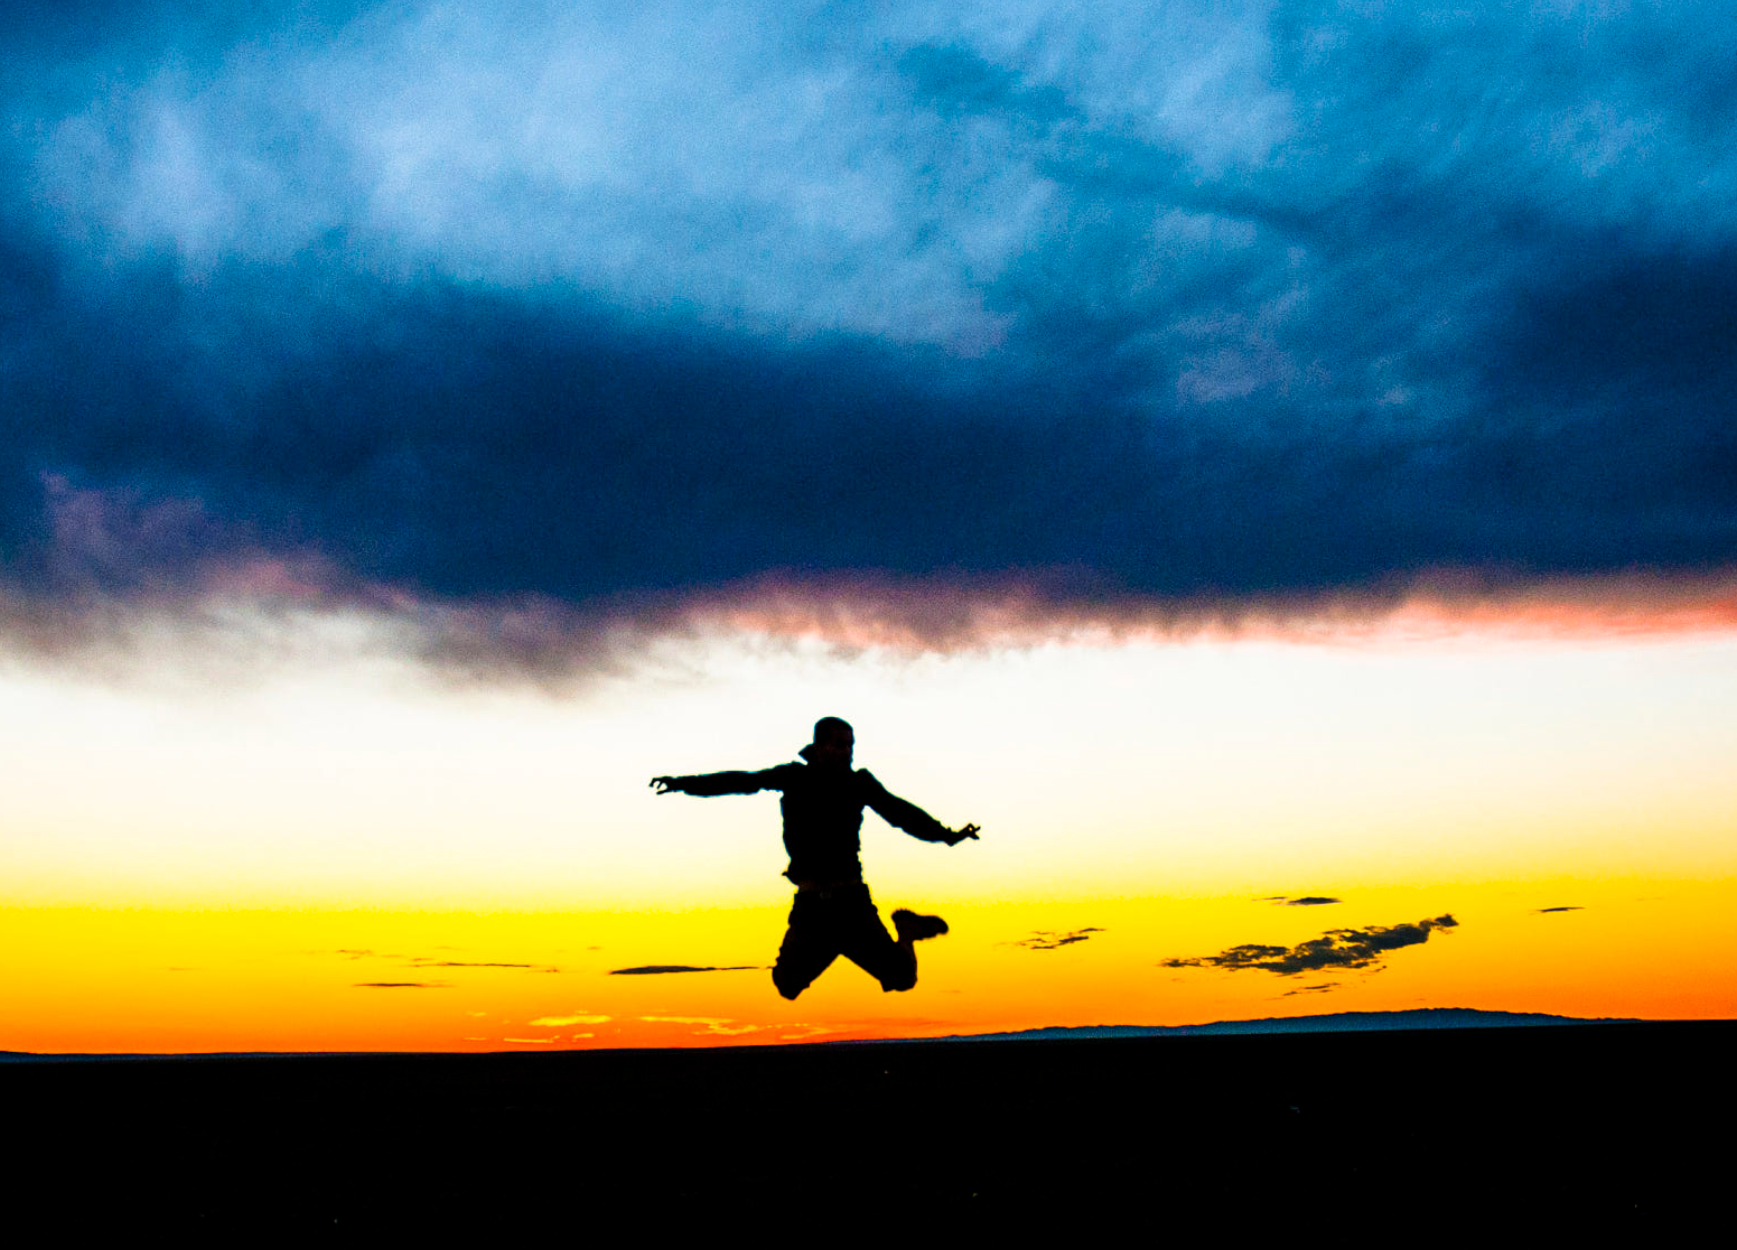 Mongolia_Jump_by_Gareth_Griffiths___500px